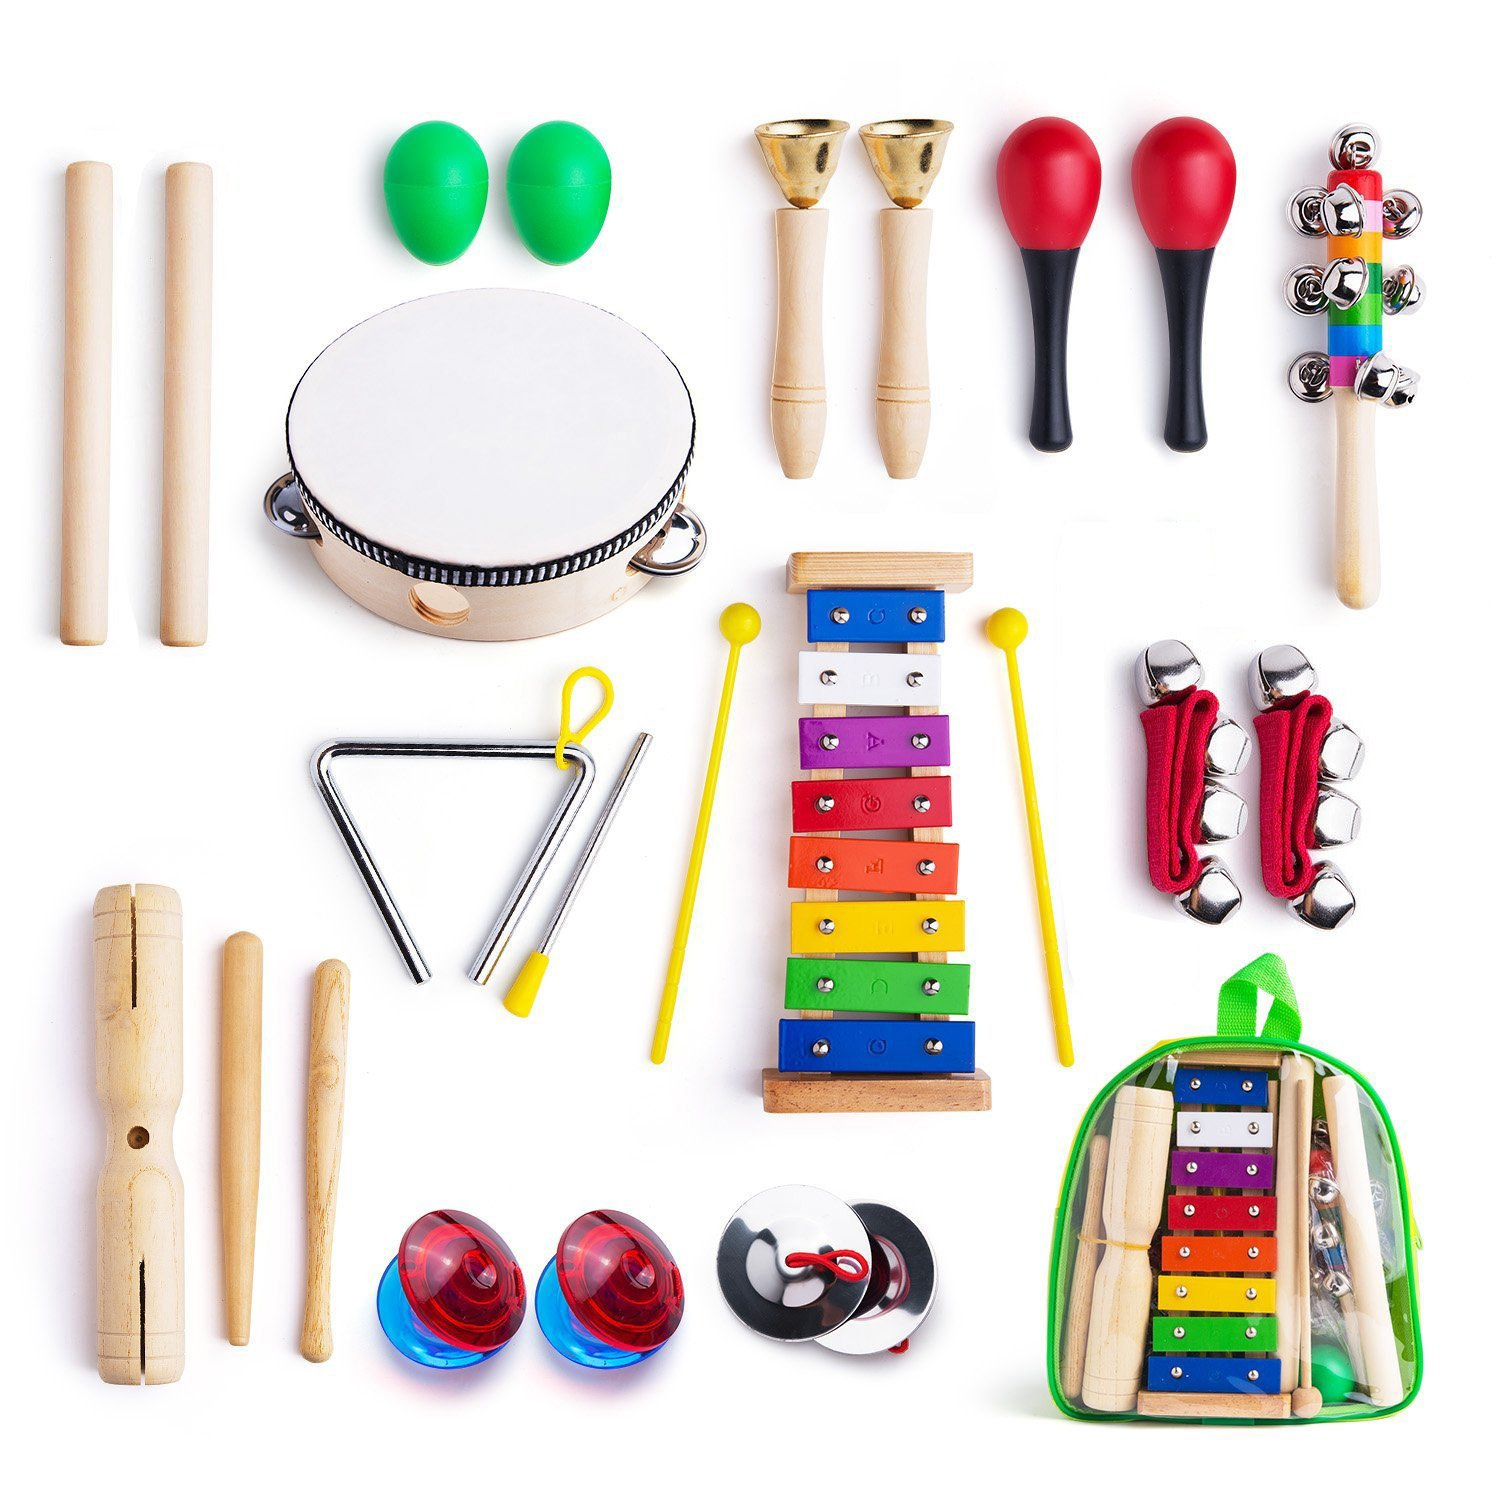 Helpful New Hot Sales A Pack Of 2 Plastic Sand Eggs Shaker Percussion Musical Instruments Toys Early Education For Children Kids Musical Instruments